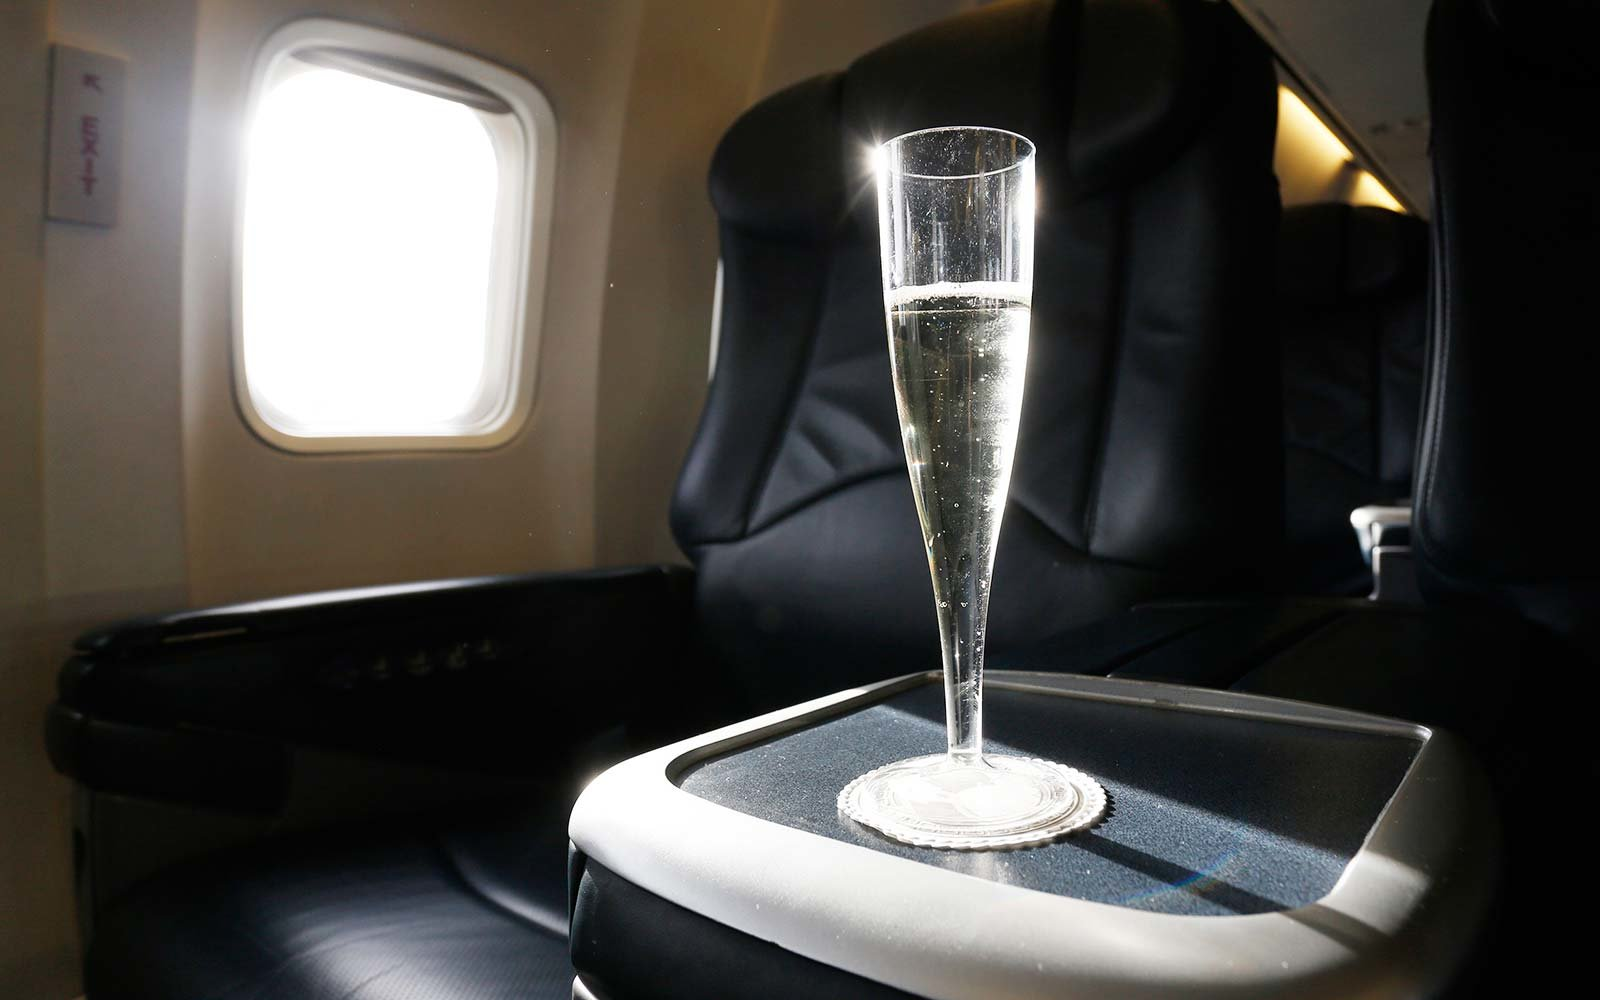 Man sues airline for serving sparkling wine instead of champagne